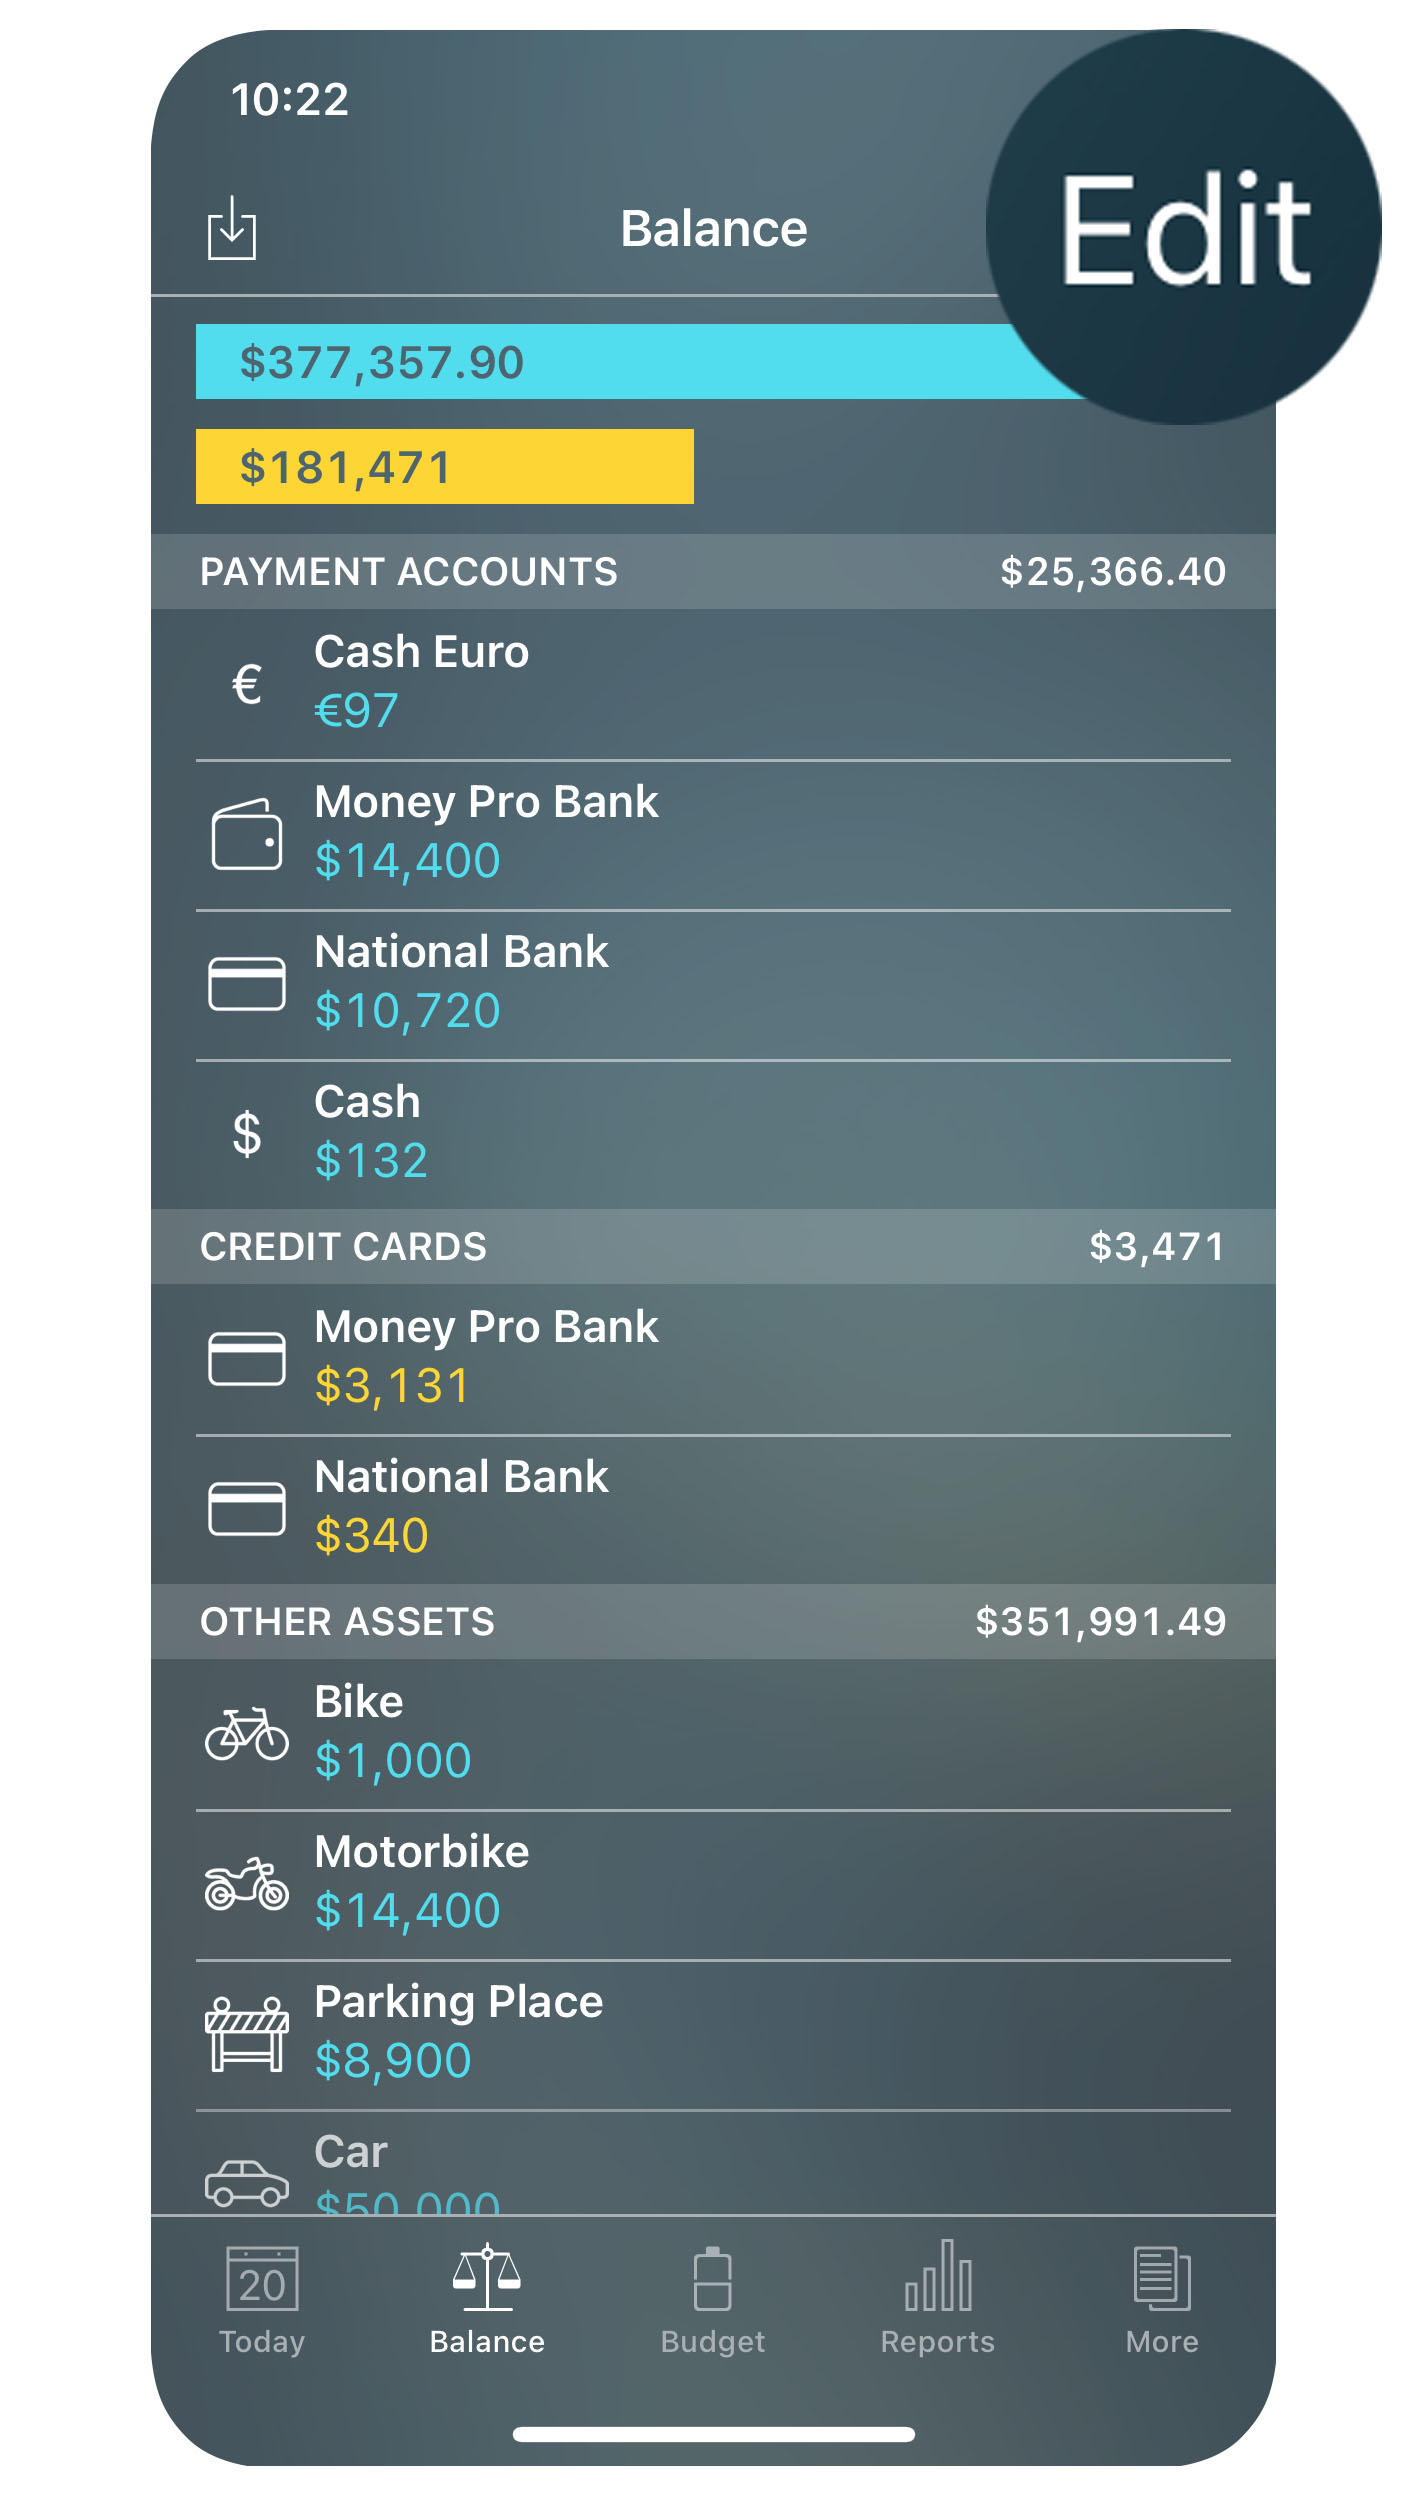 Money Pro - Accounts - Edit - iPhone